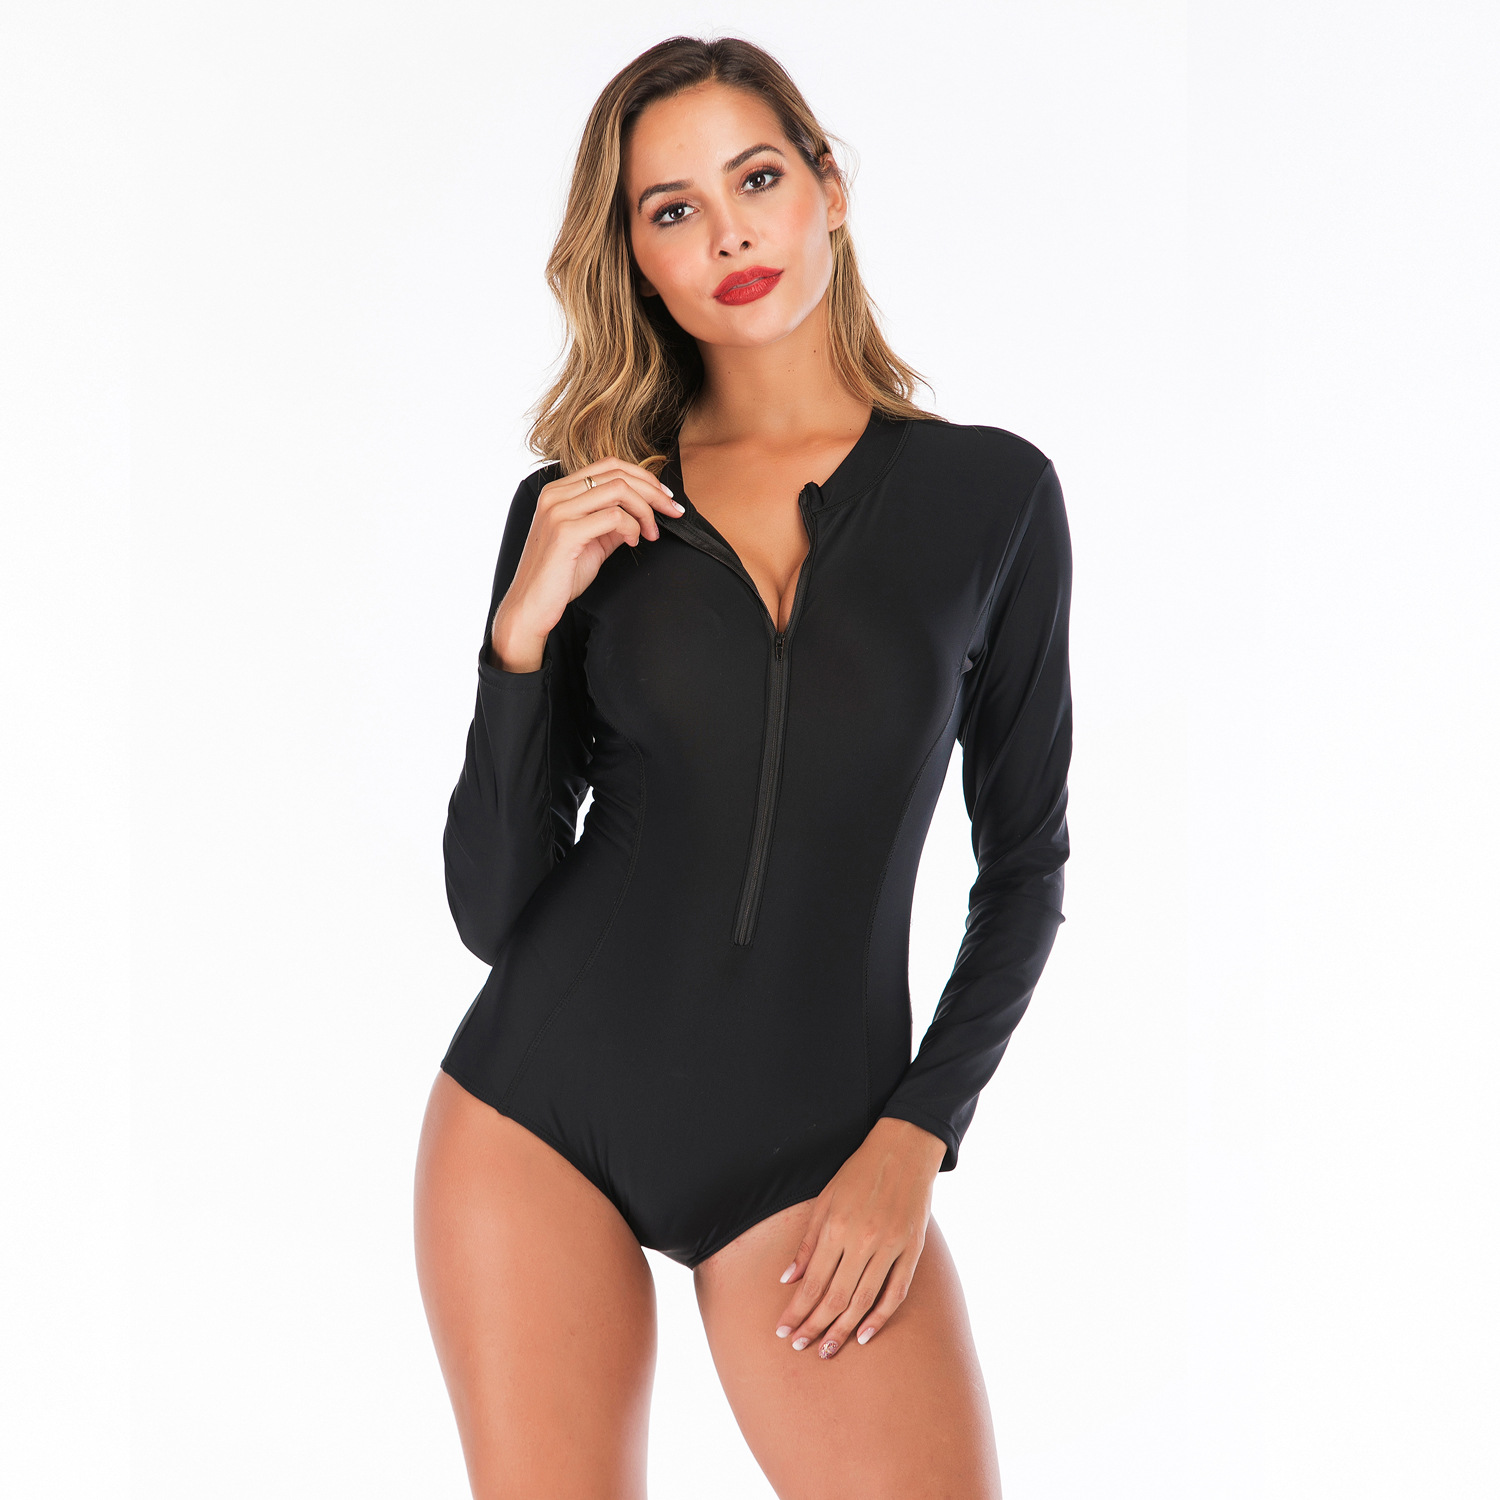 Black Solid Color Women One Piece Body Suits Beachwear Surfing Diving Swimsuit Sexy Swimwear Summer Long Sleeve Bathing Suit